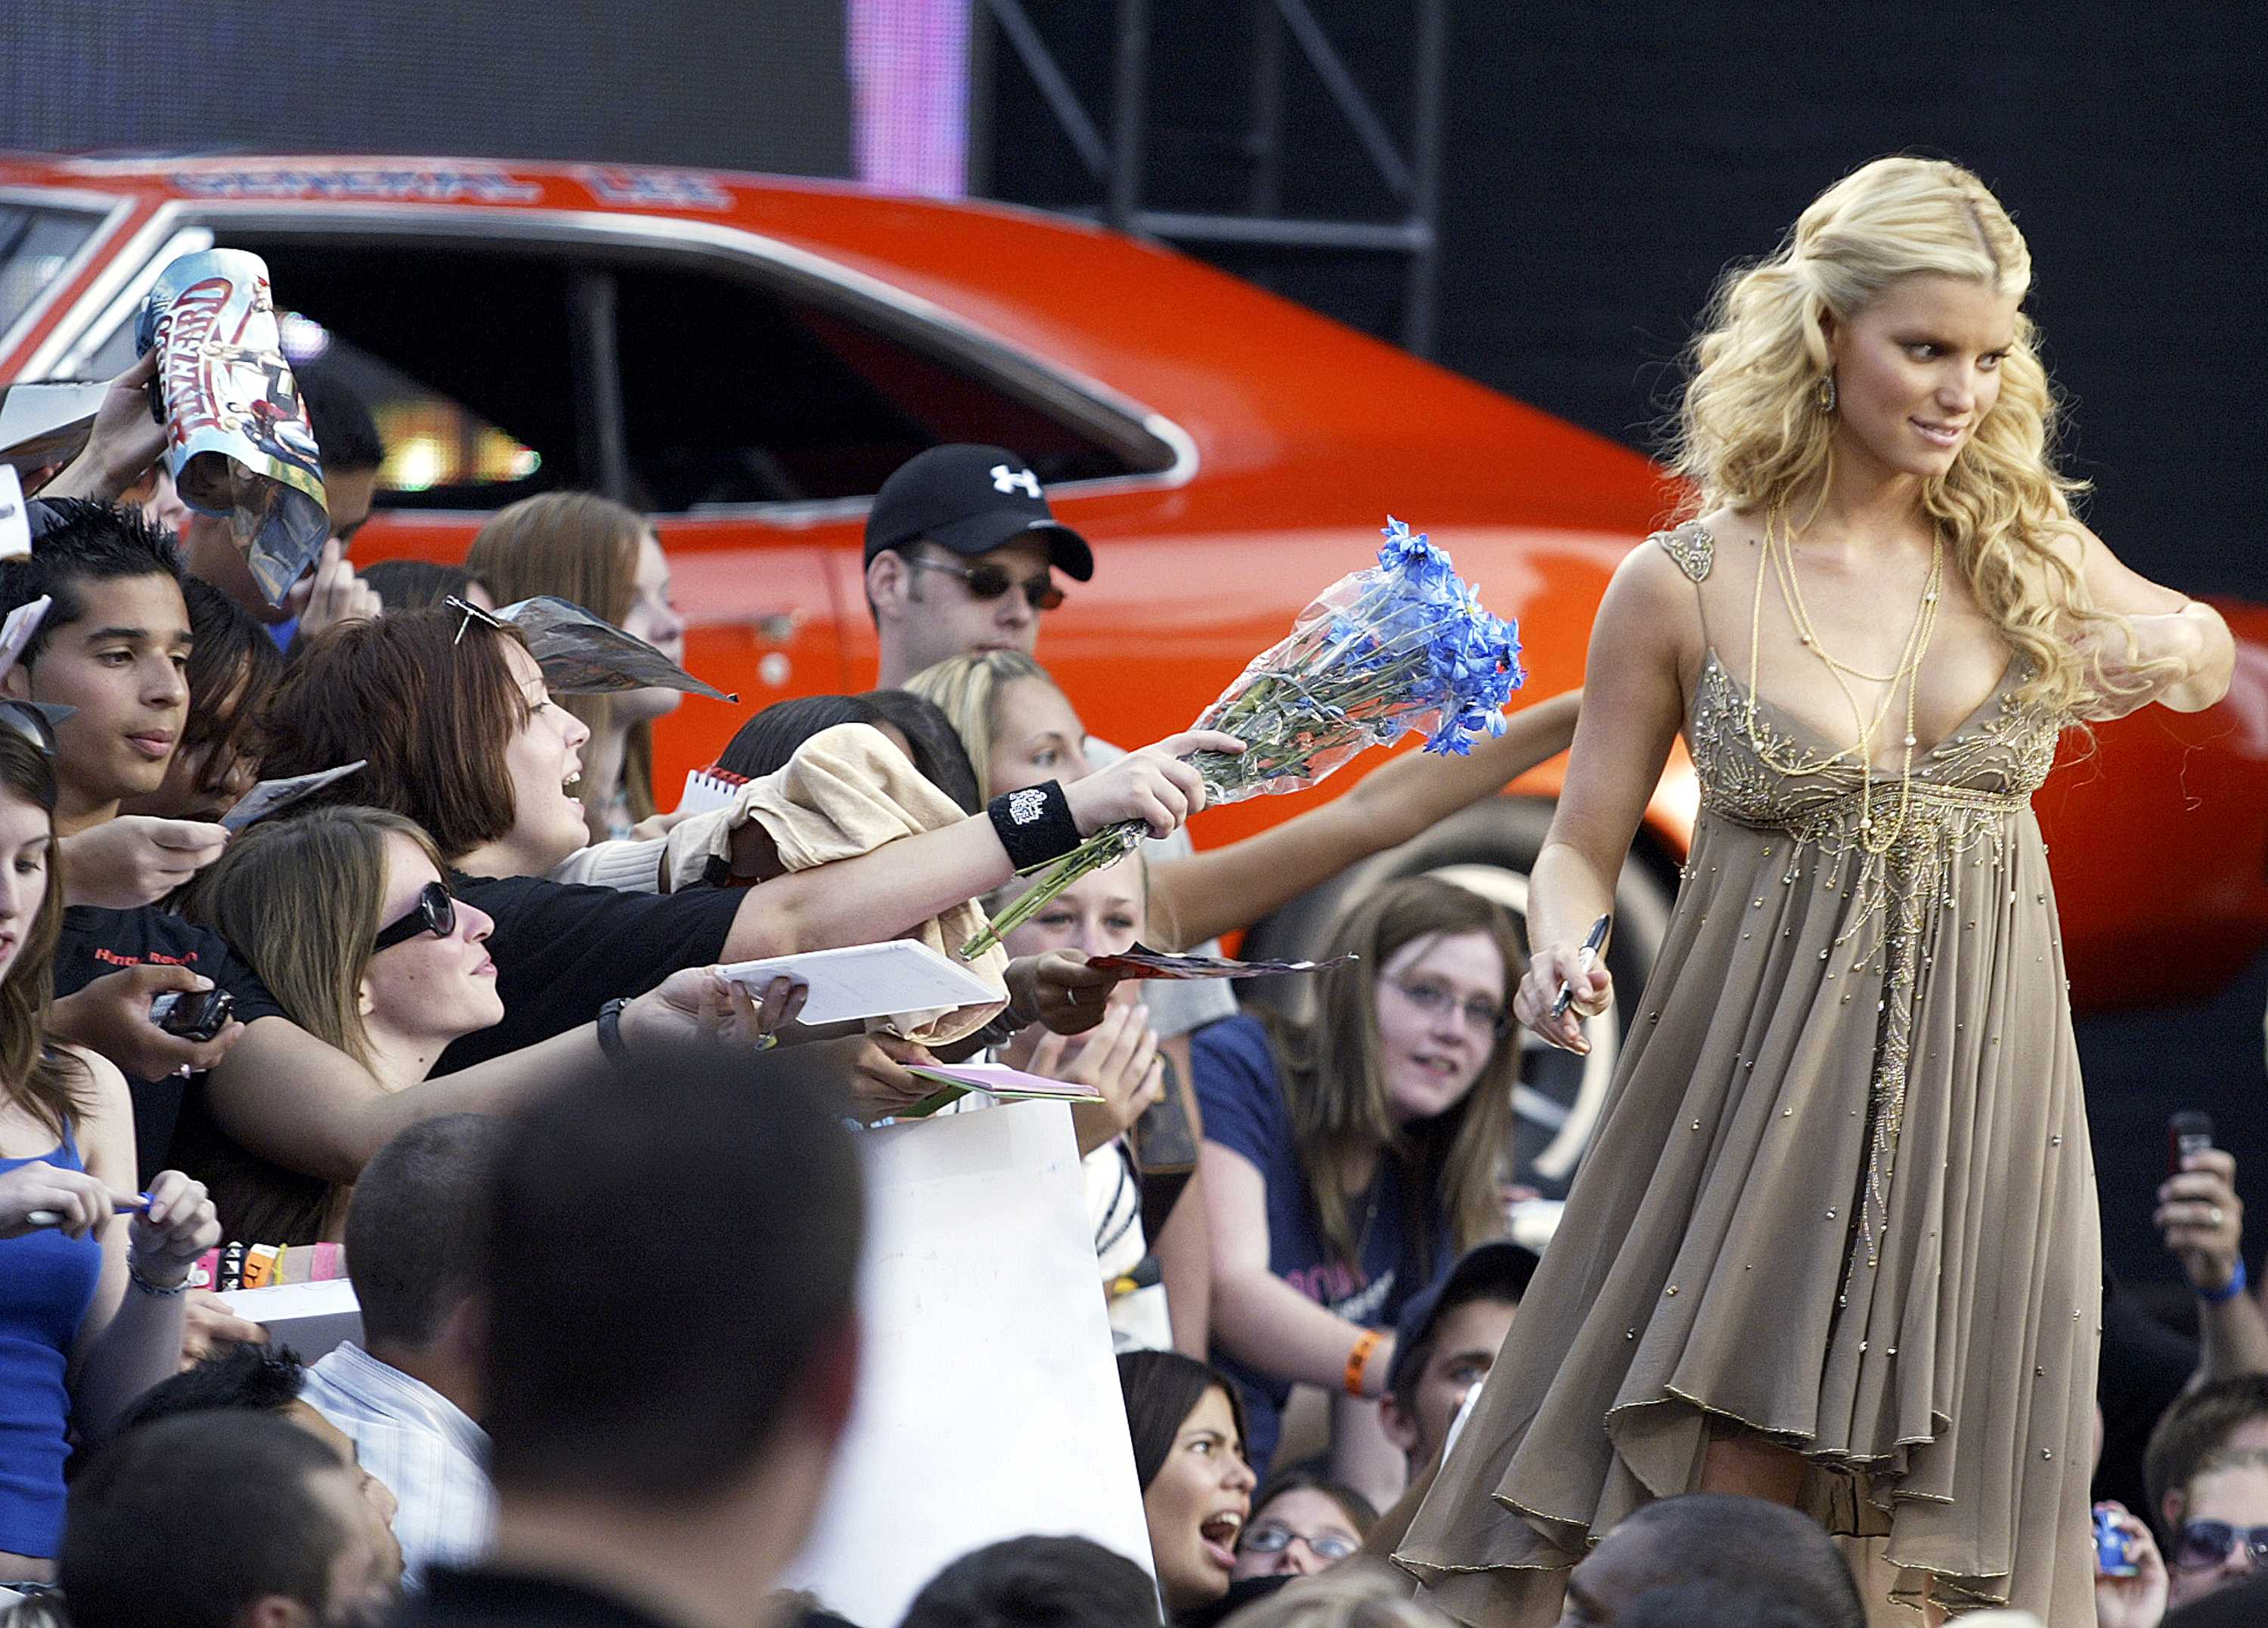 """TORONTO - JULY 31: Actress Jessica Simpson signs autographs for fans during an appearance on Canadian television to promote the new action comedy """"The Dukes of Hazzard"""", featuring Johnny Knoxville, Seann William Scott and Jessica Simpson on July 31, 2005 in Toronto, Canada. (Photo by Donald Weber/Getty Images)"""